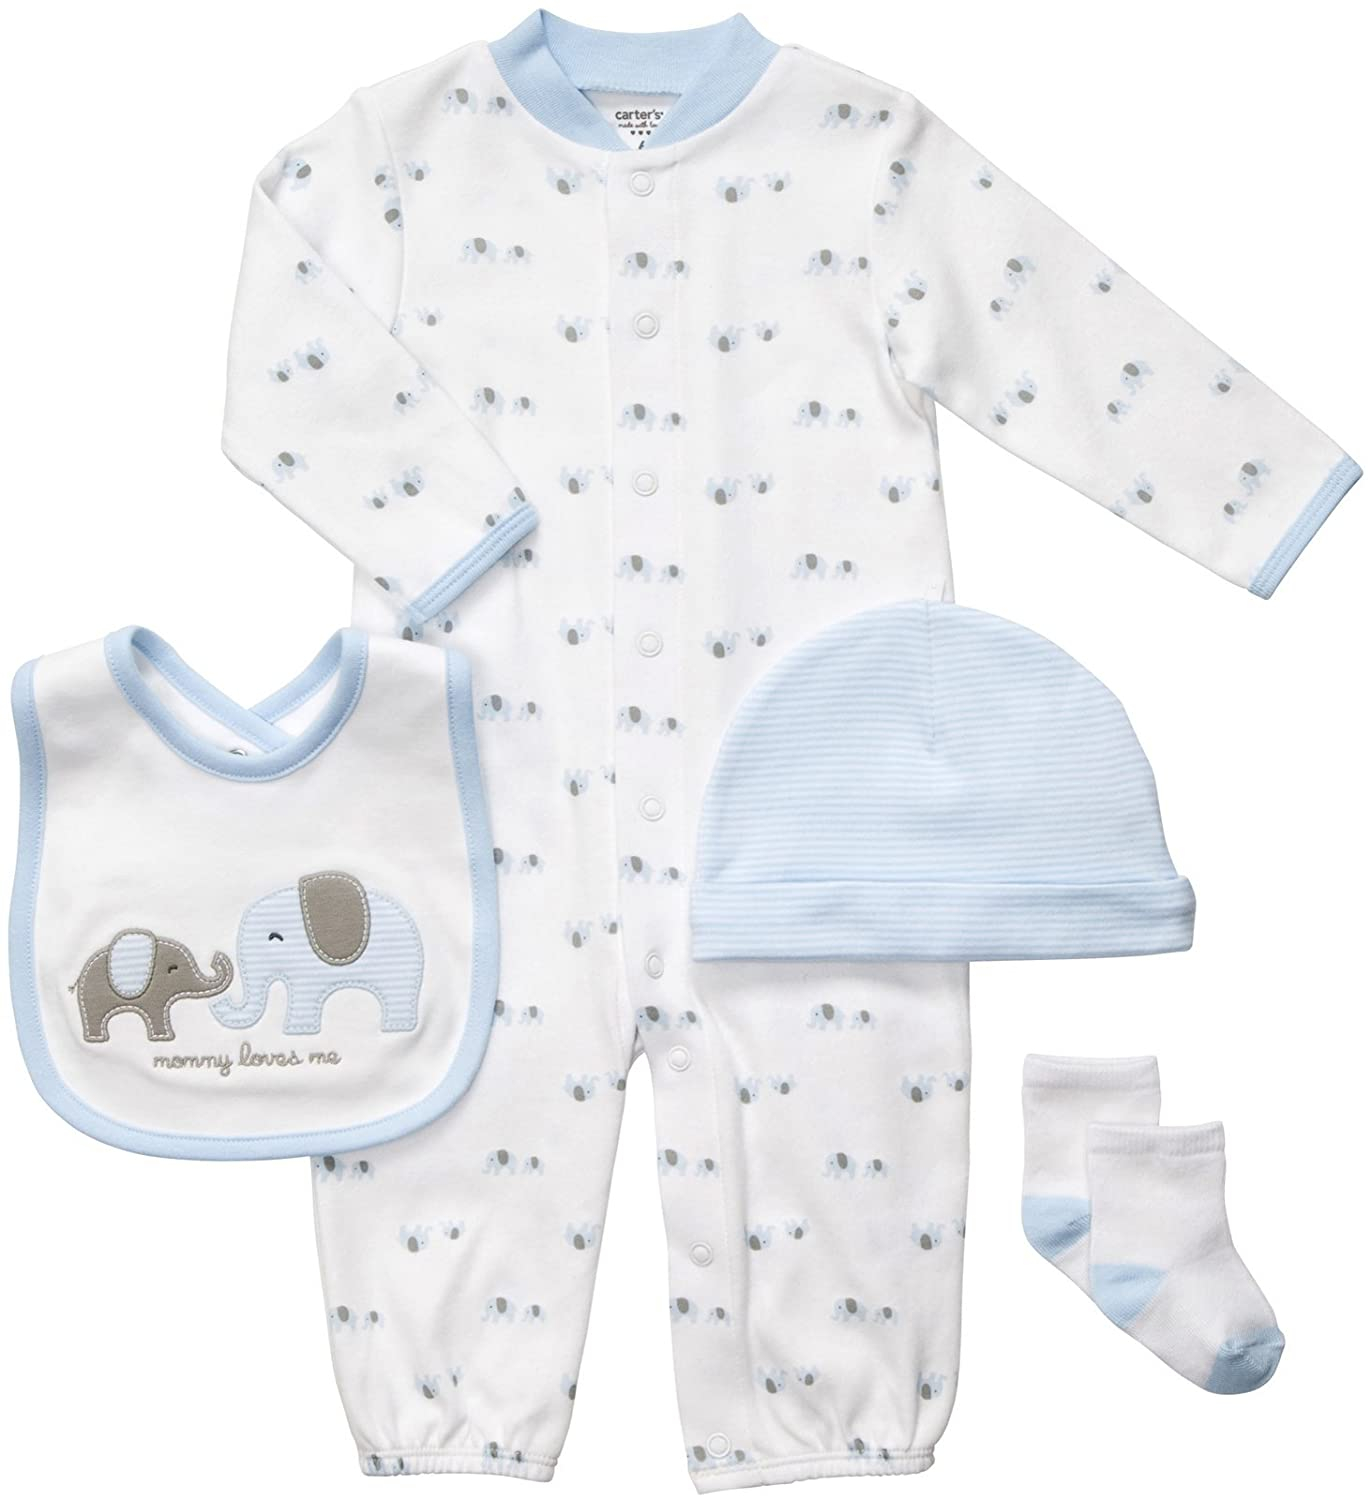 Unique Pictures Of Baby Boy Elephant Clothes Cutest Baby Clothing